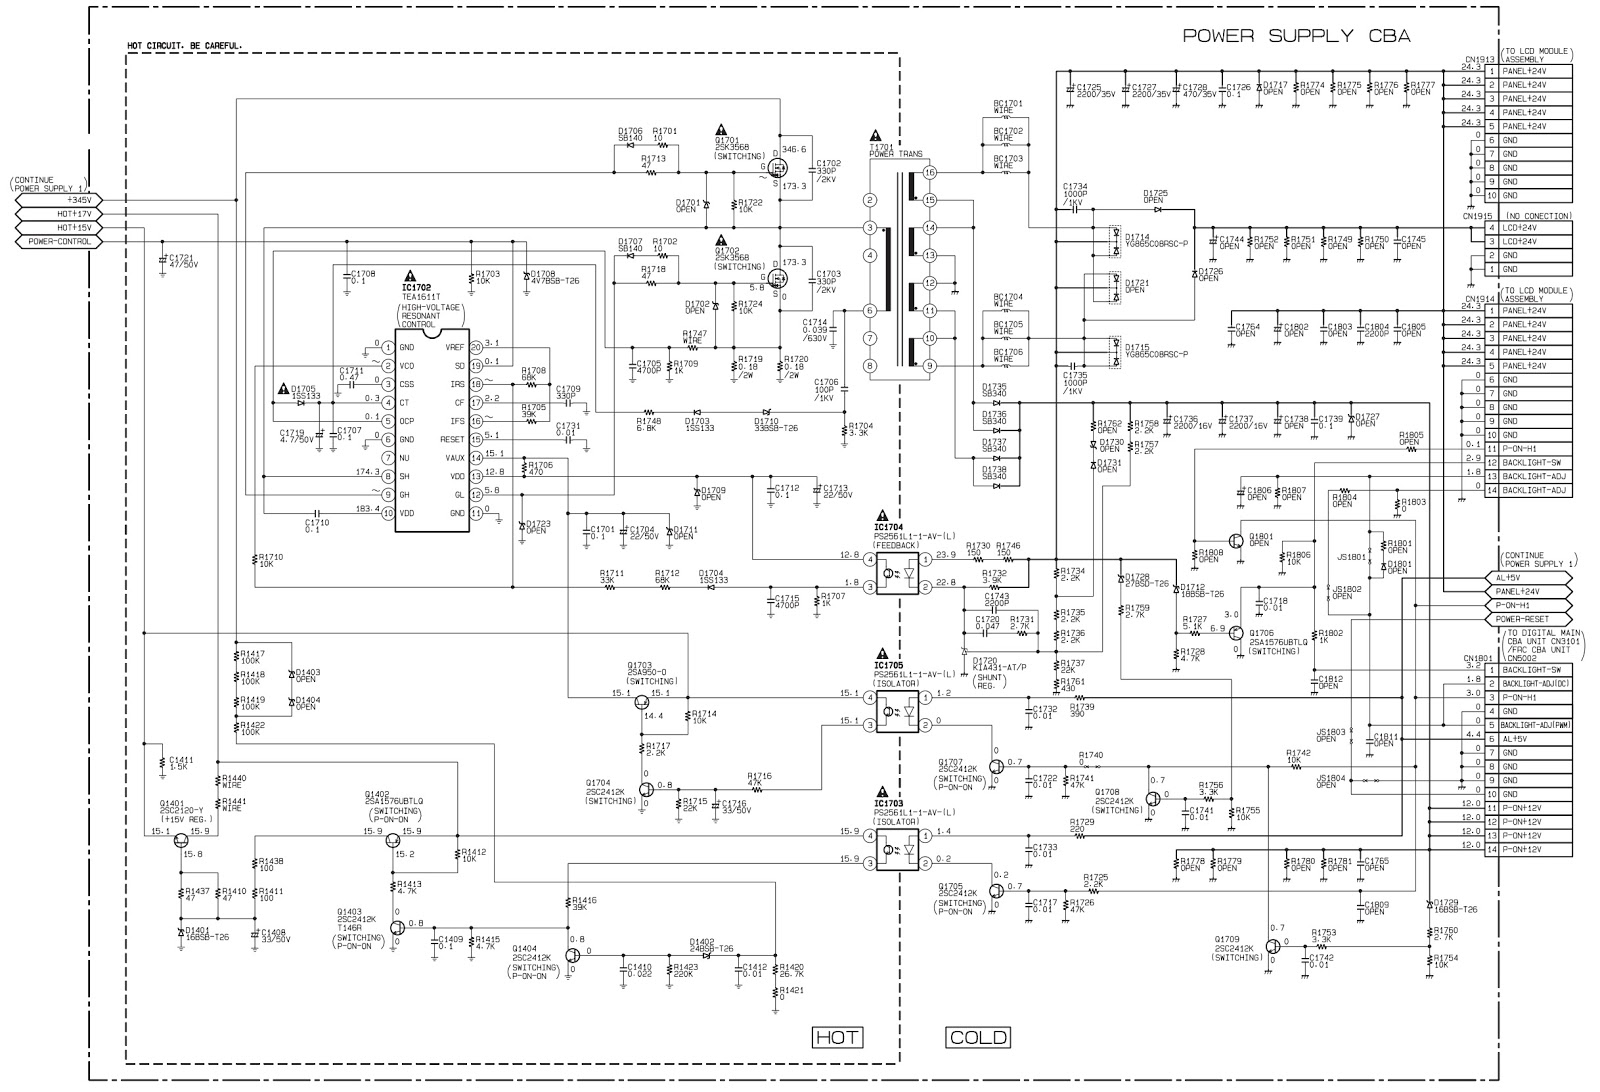 philips 55pfl5706 f7 \u2013 circuit diagram (full) schematic diagramsthe voltage for parts in hot circuit is measured using hot gnd as a common terminal digital main board schematic